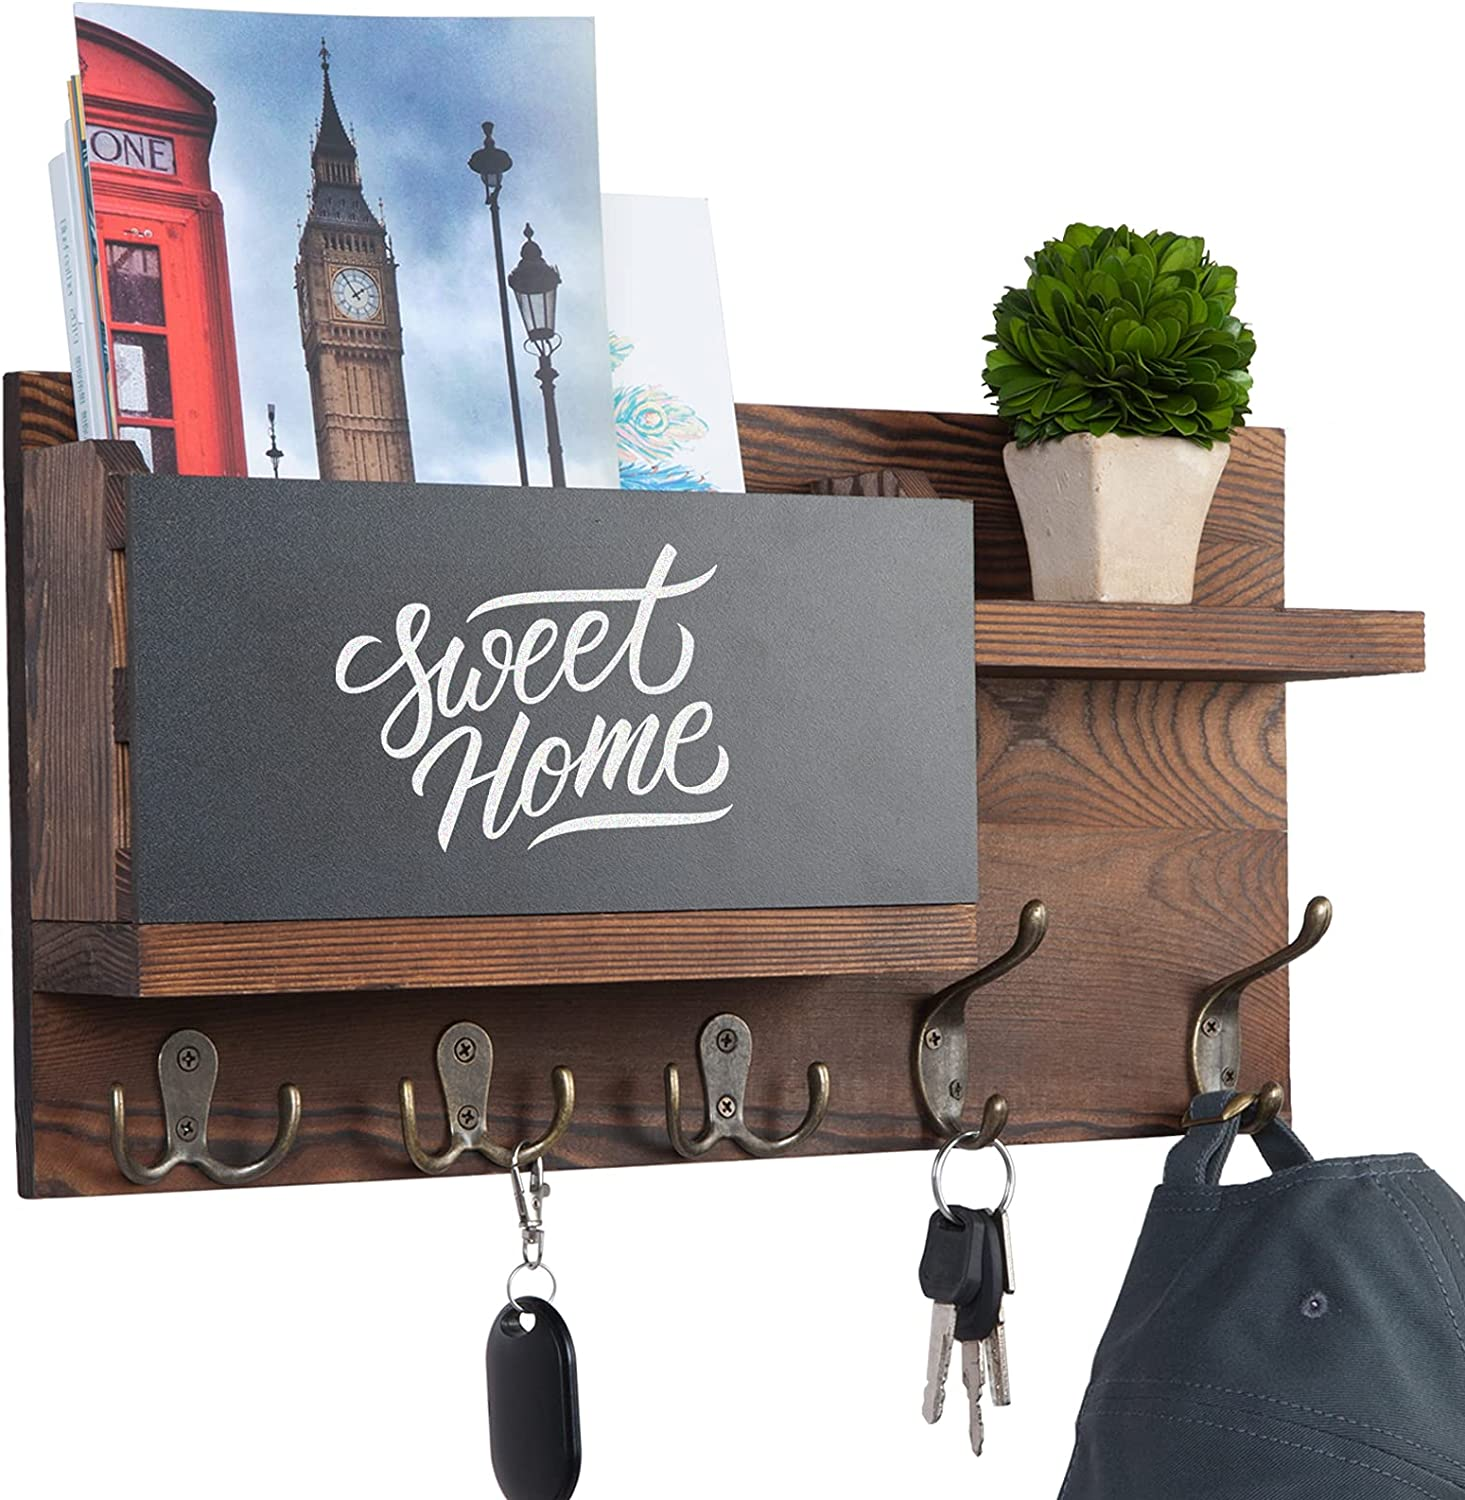 Key and Mail Holder for Wall Decorative, Mail Organizer Wall Mount with Chalkboard Surface and 5 Key Hook, Sturdy Pine Wood Key Rack, Rustic Wall Key Holder for Entryway, Front Door, House Decor